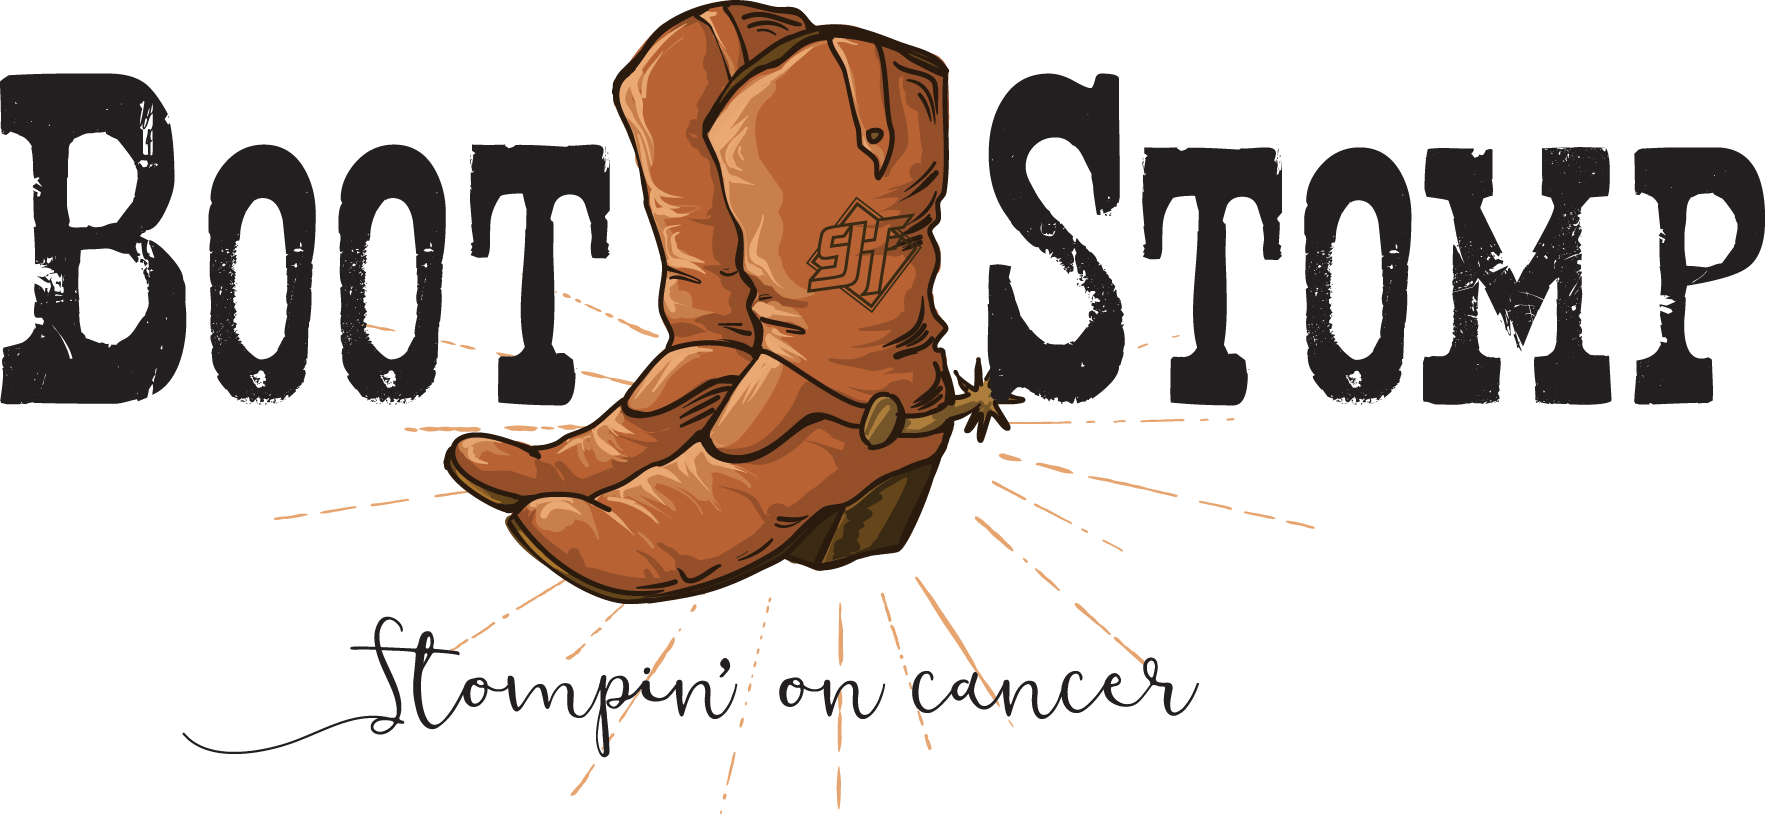 Boot stomping clipart image free Boot Stomp Montrose | Stompin\' on cancer image free